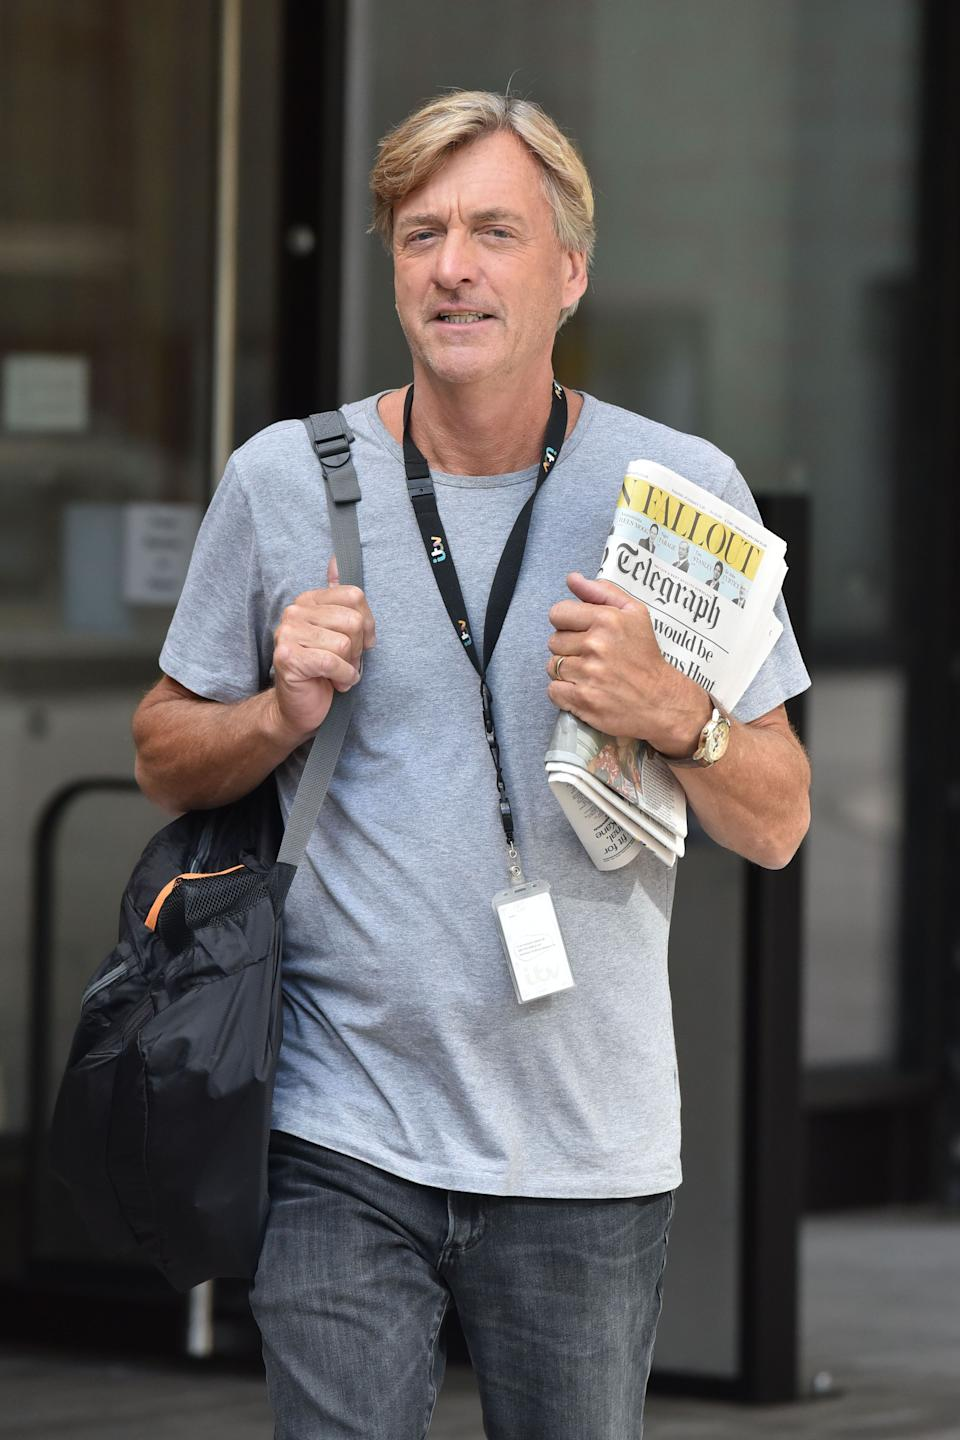 Richard Madeley outside ITV Studios in May 2019 (Photo: HGL via Getty Images)